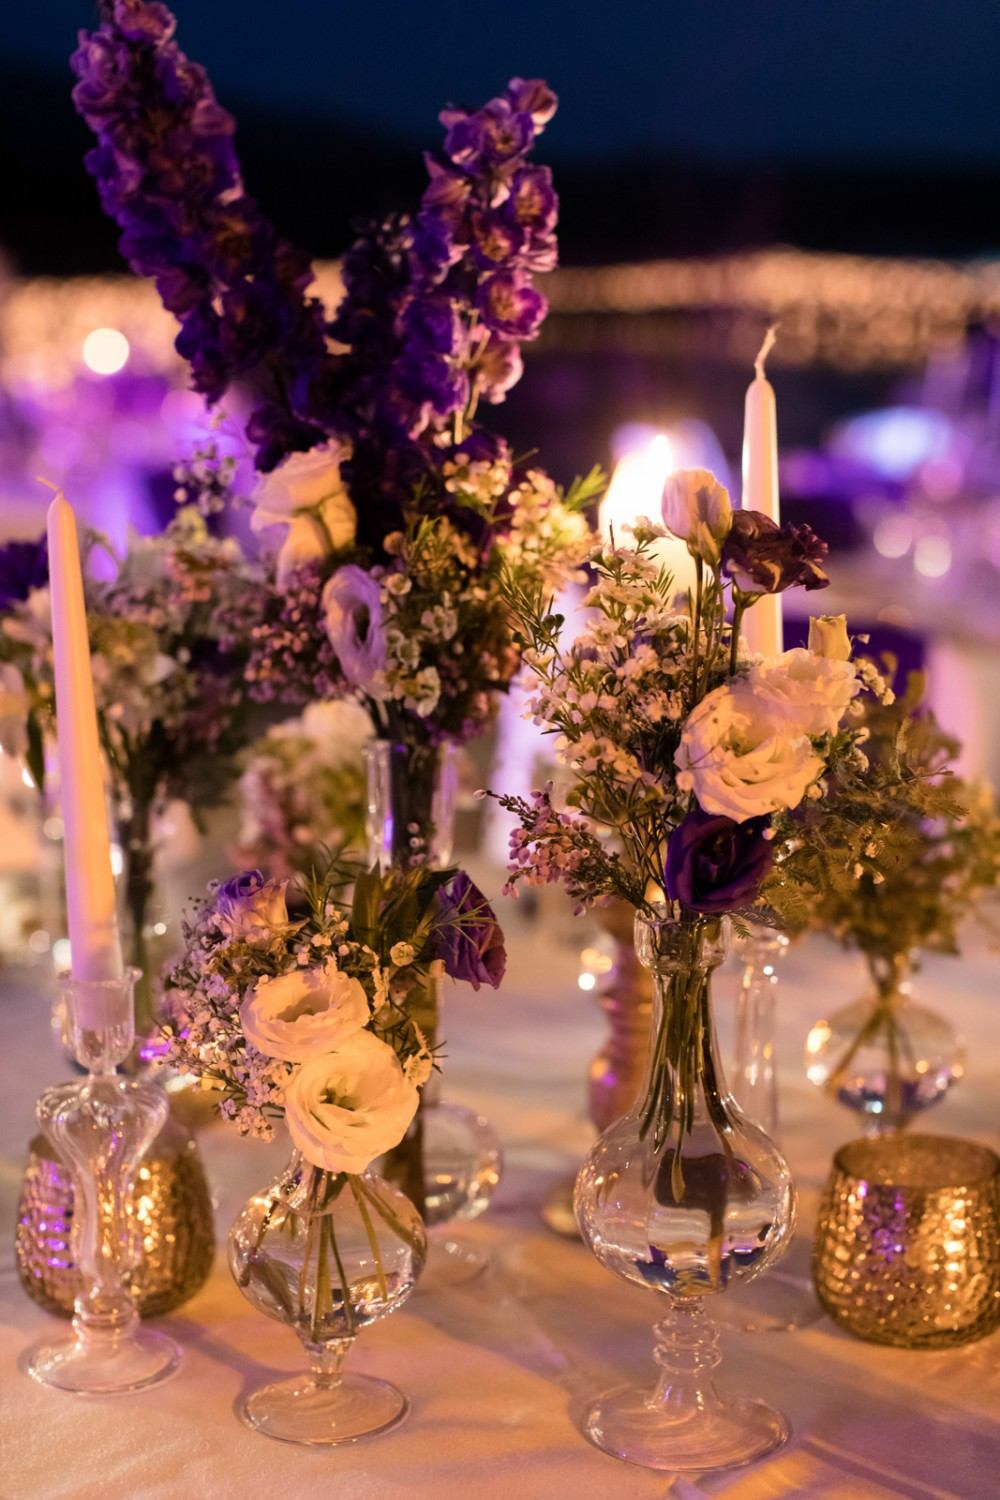 Littleton-Rose-Luxury-Wedding-Planner-Corsica-Justine-and-Tom-Purple-and-White.jpg